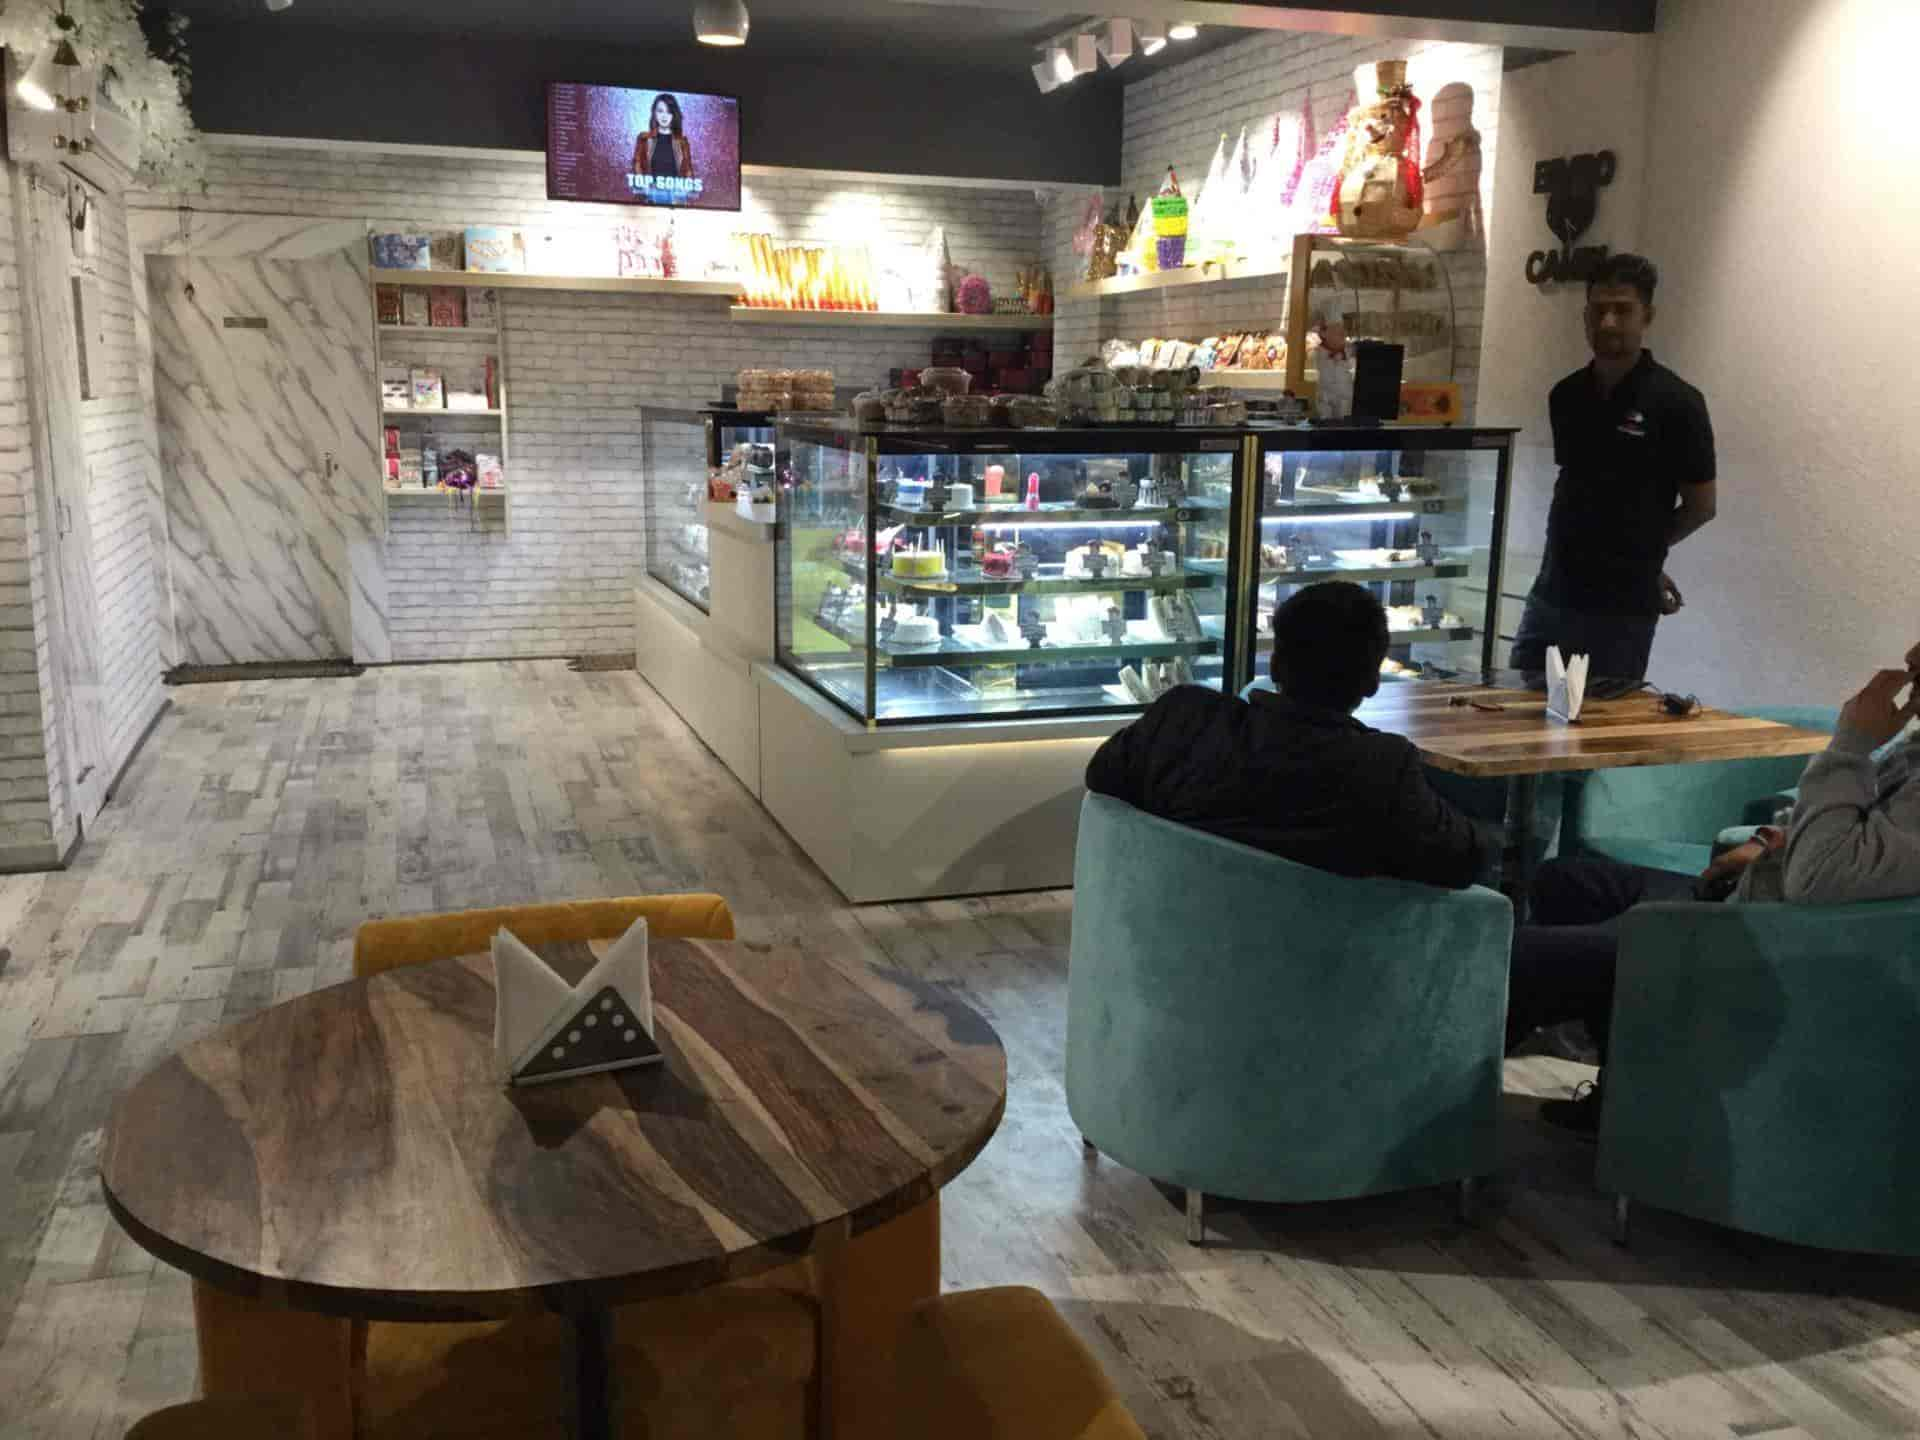 Bimbo Cakes & Cafe, Near Axis Bank, Bahadurgarh-Haryana